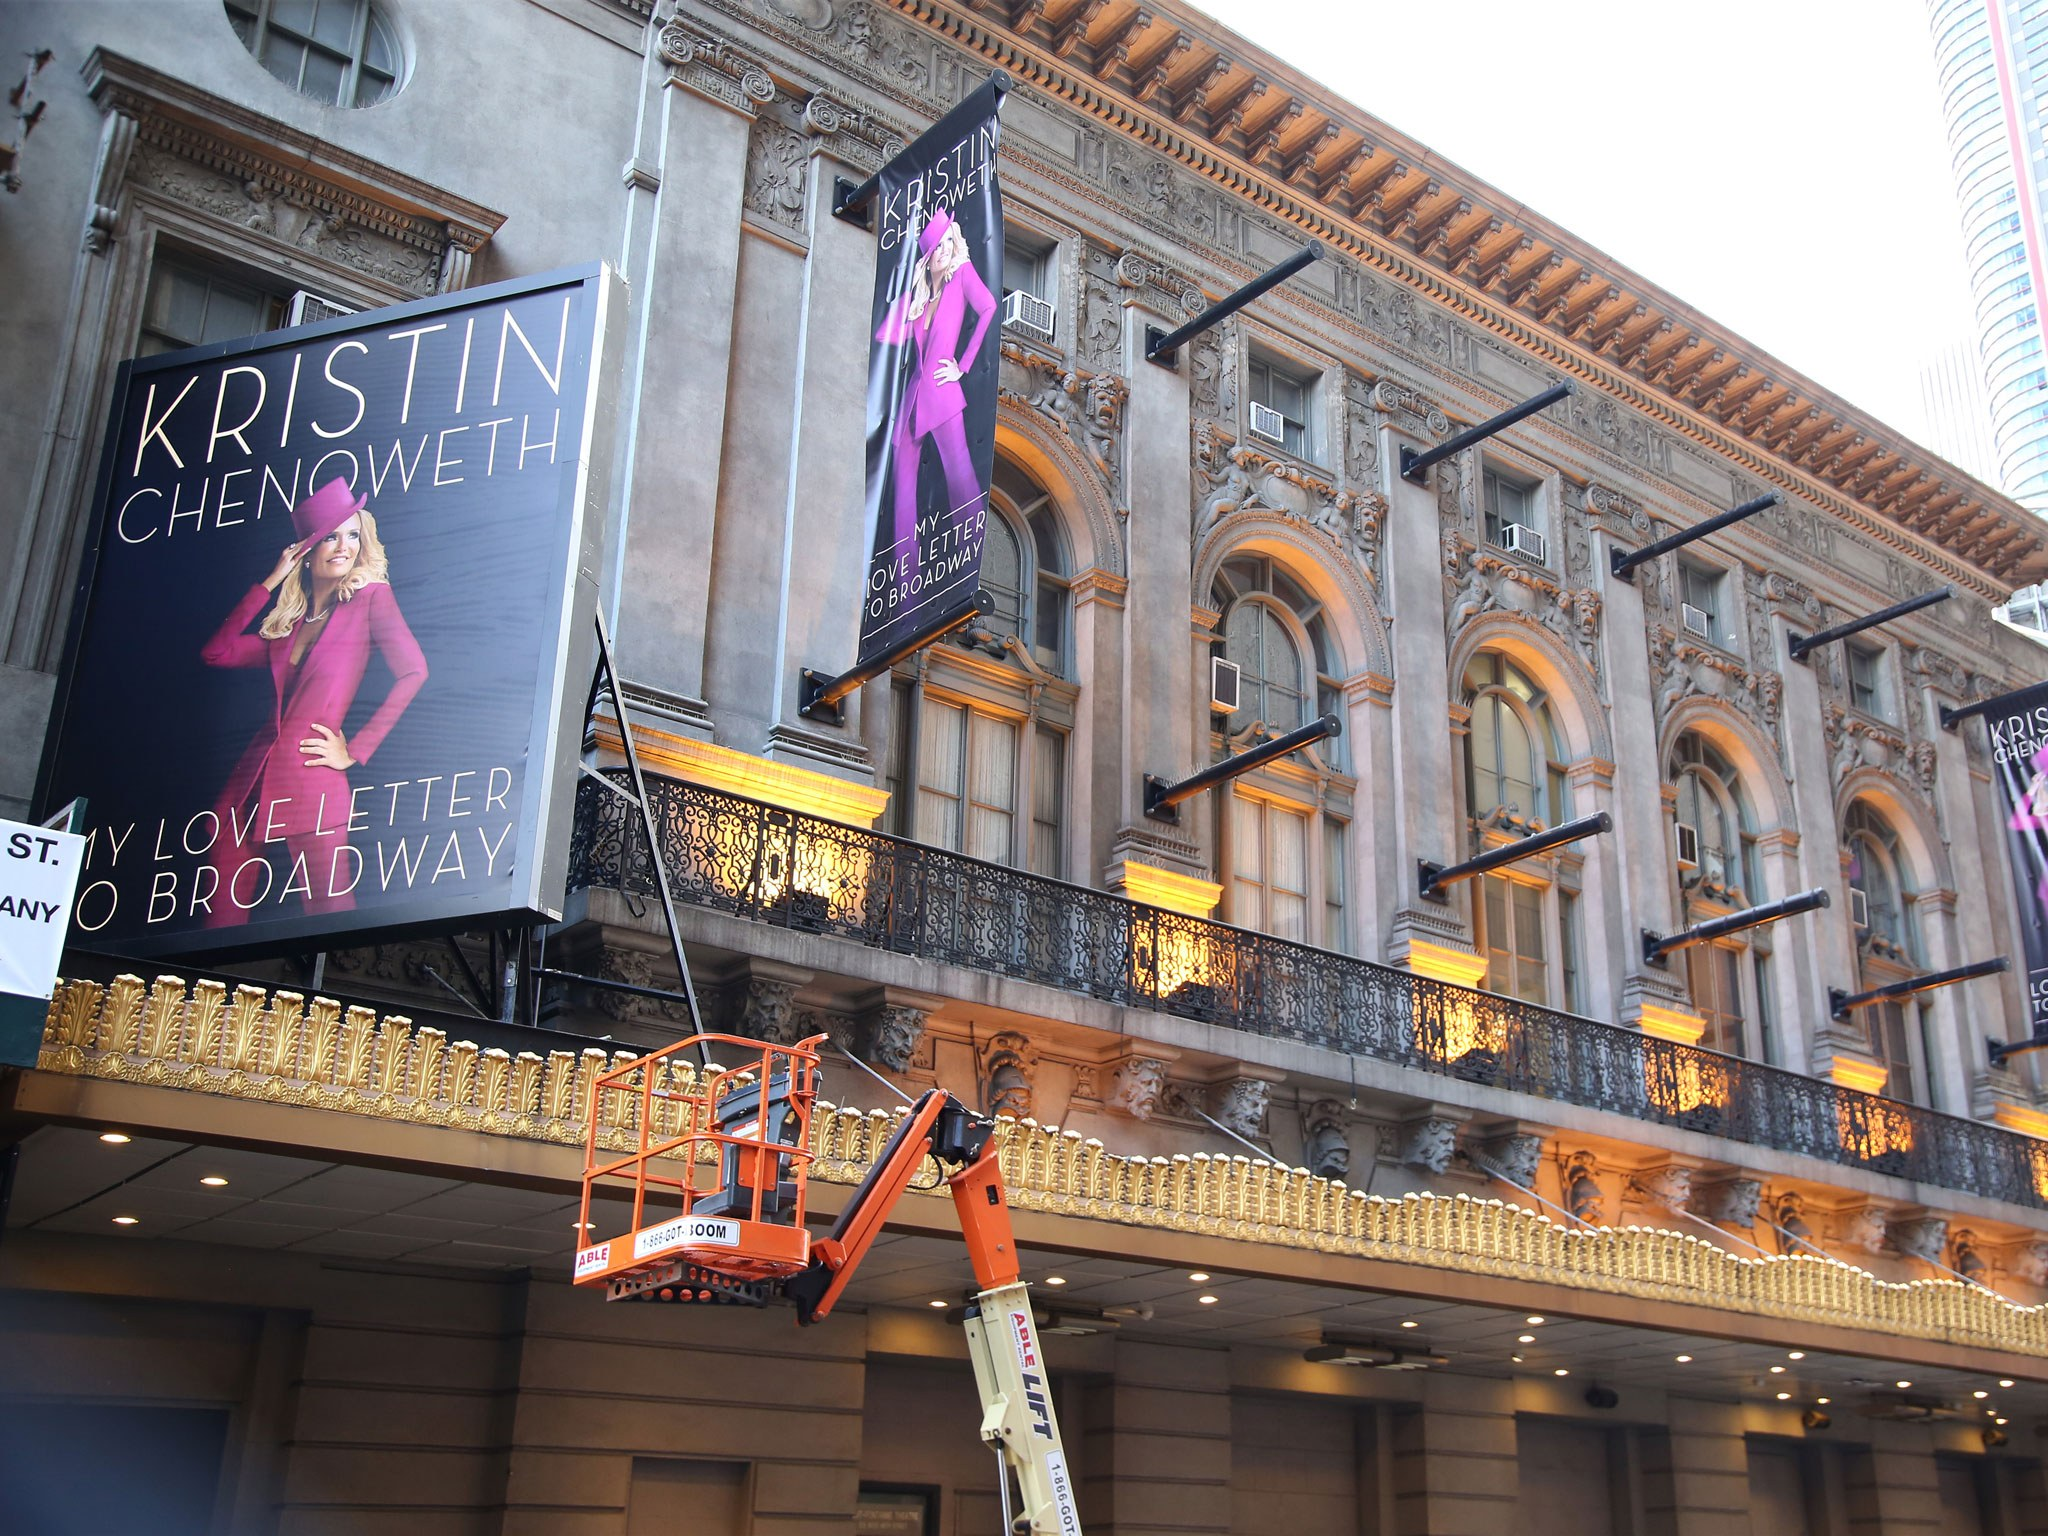 Kristin Chenoweth: My Love Letter to Broadway Marquee